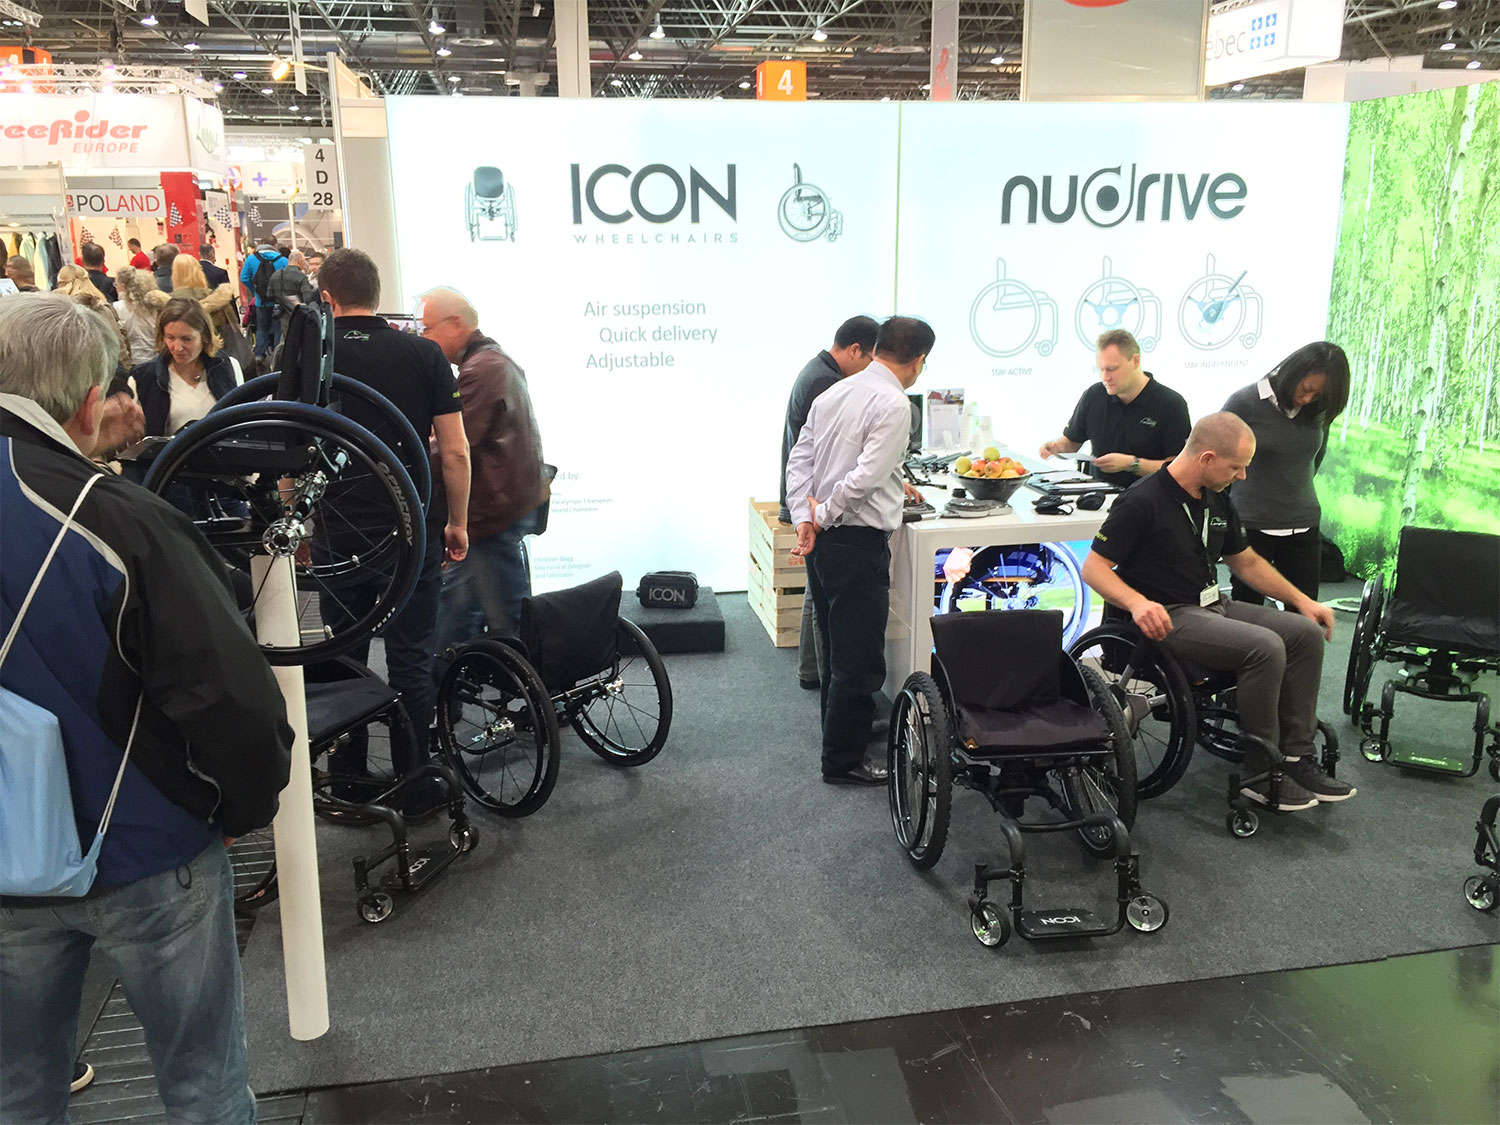 It is time for Rehacare in Düsseldorf again